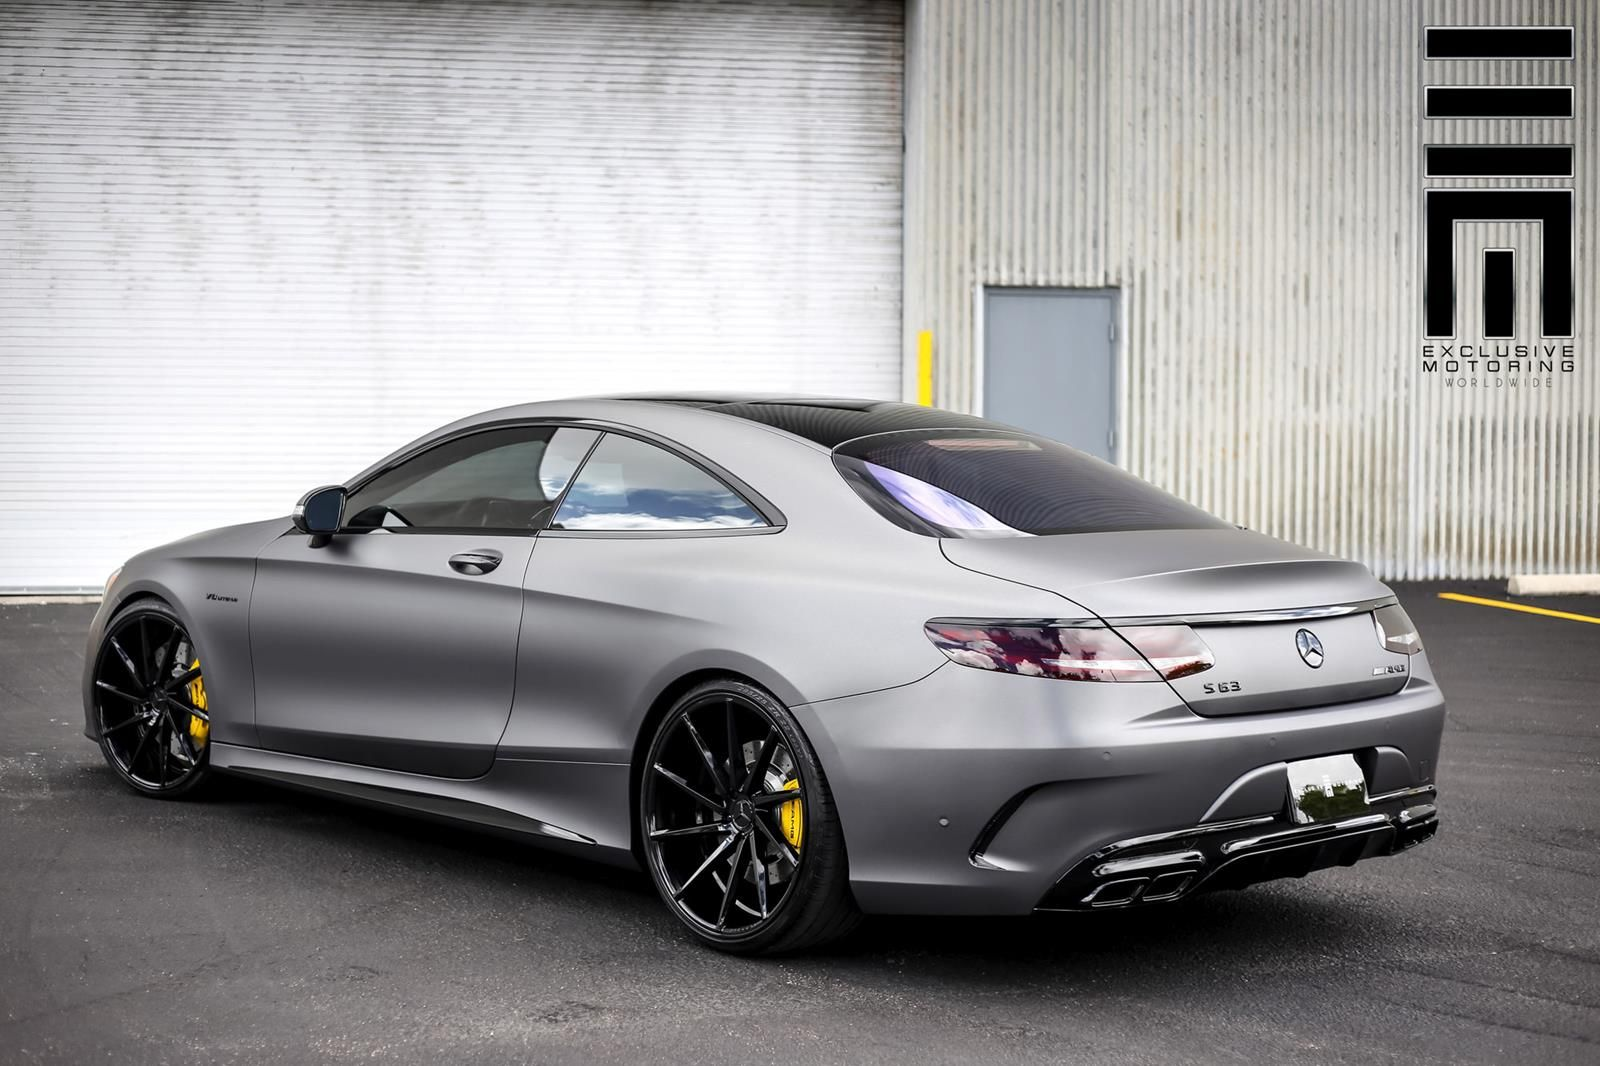 mercedes s63 amg coupe with a matte gray paint job cars pinterest coupe gray and cars. Black Bedroom Furniture Sets. Home Design Ideas